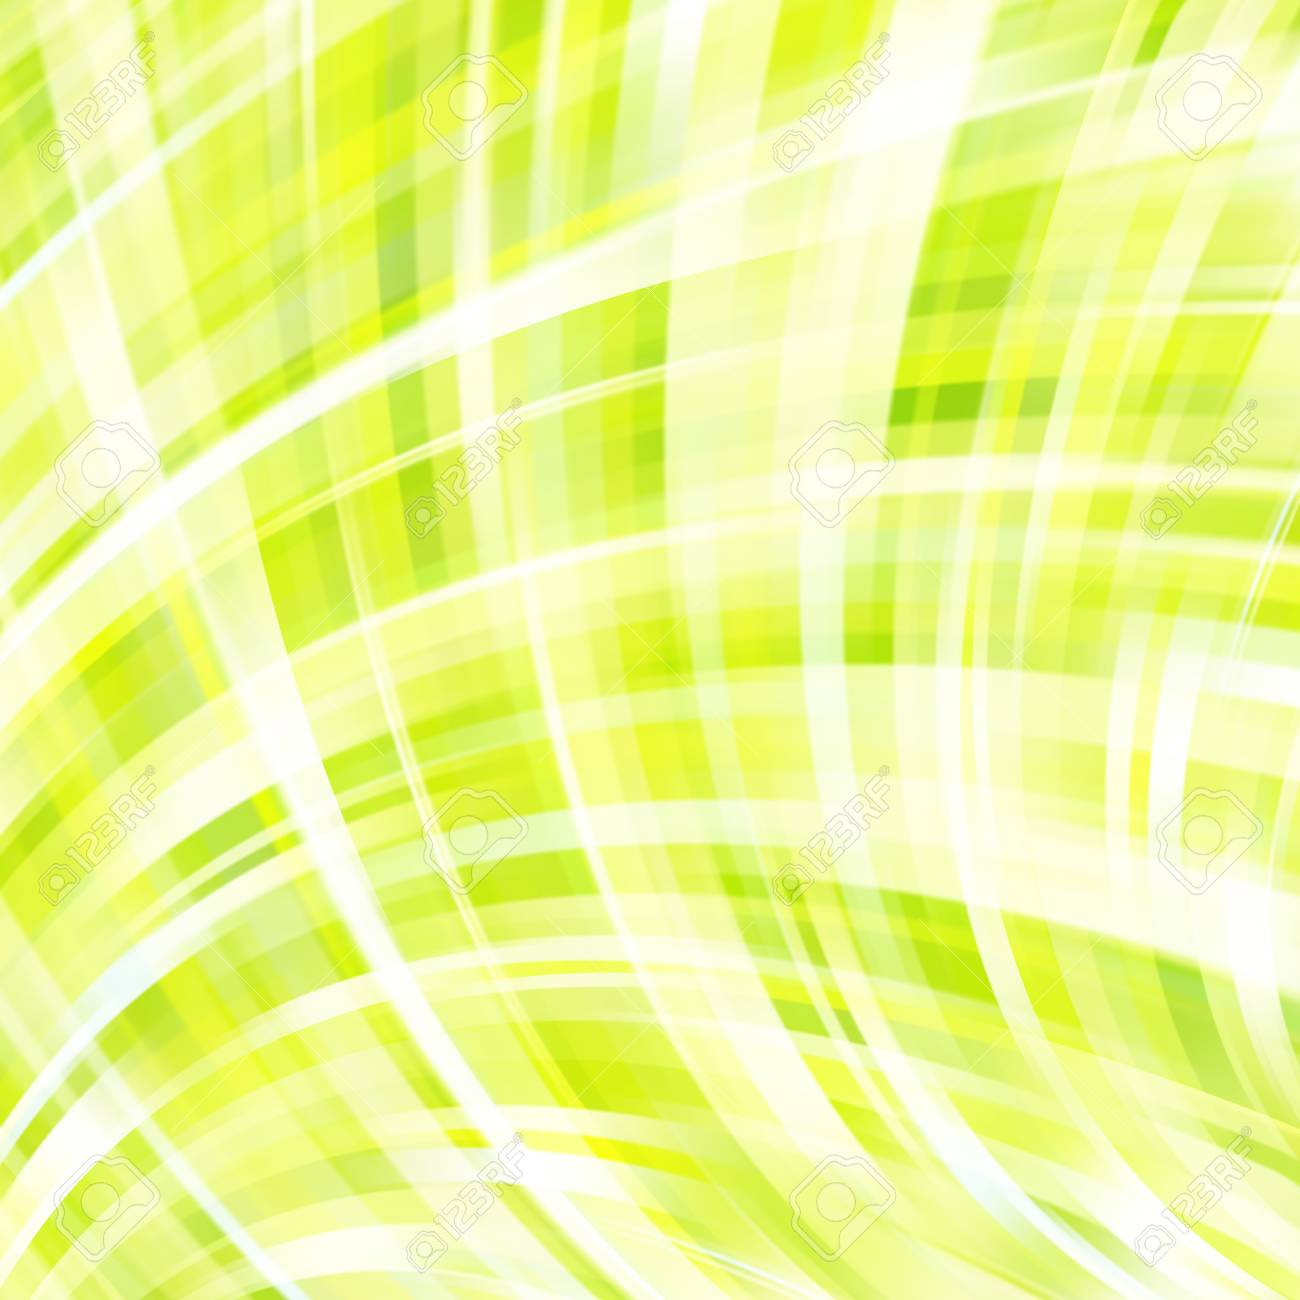 Shine Glow Background Wallpaper Pattern Abstract Shapes Yellow